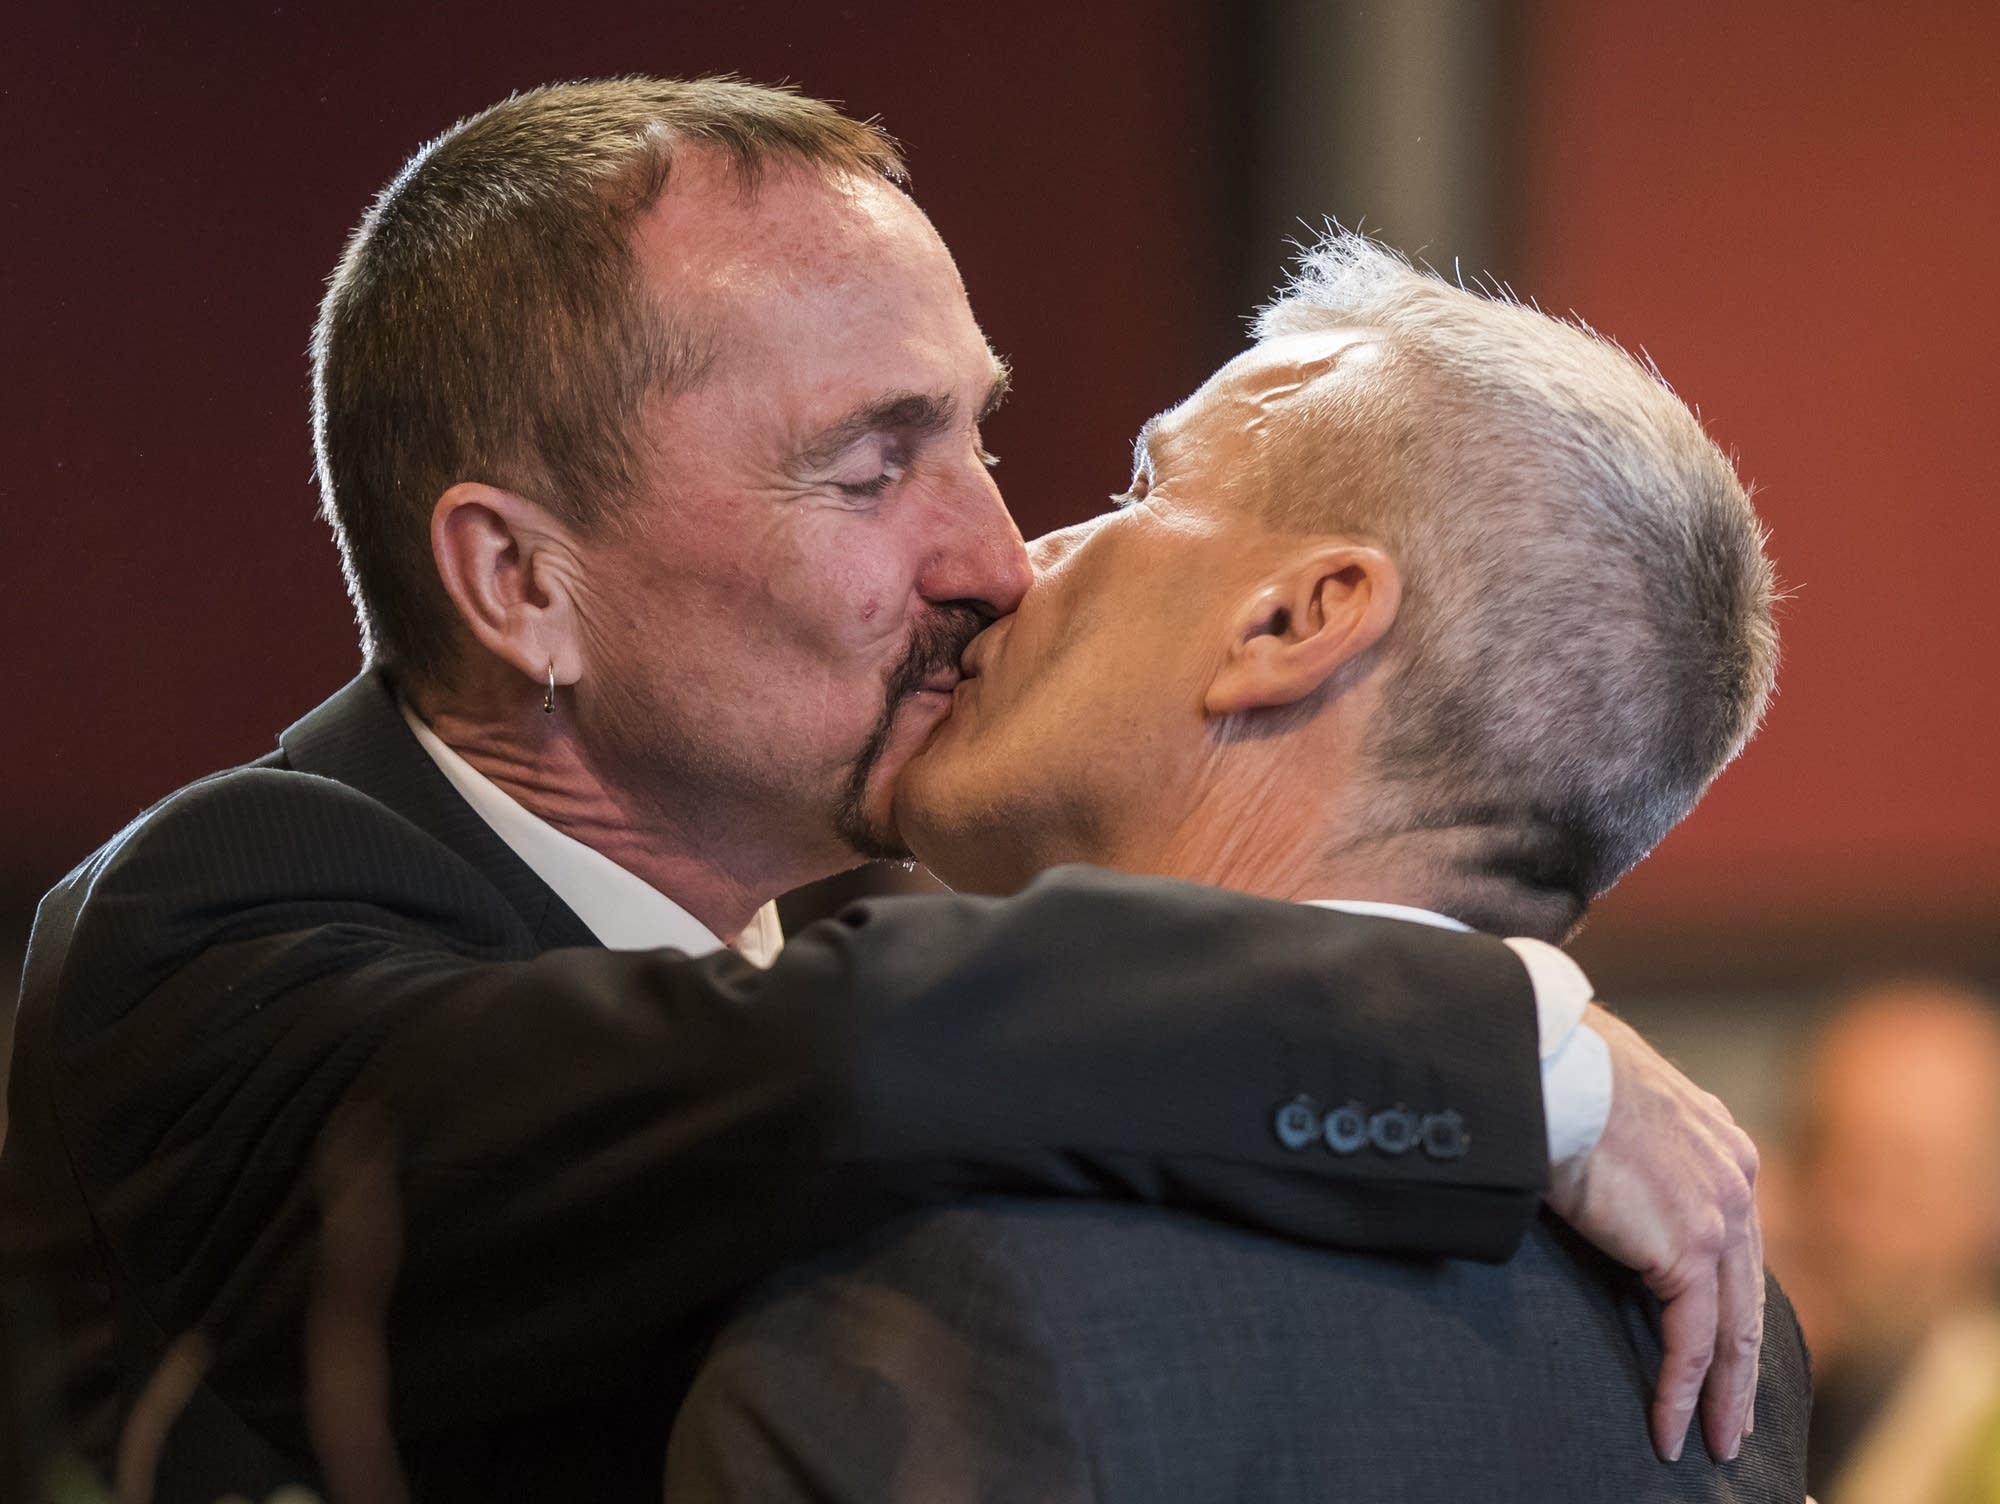 Germany's first gay couple to be legally married kiss